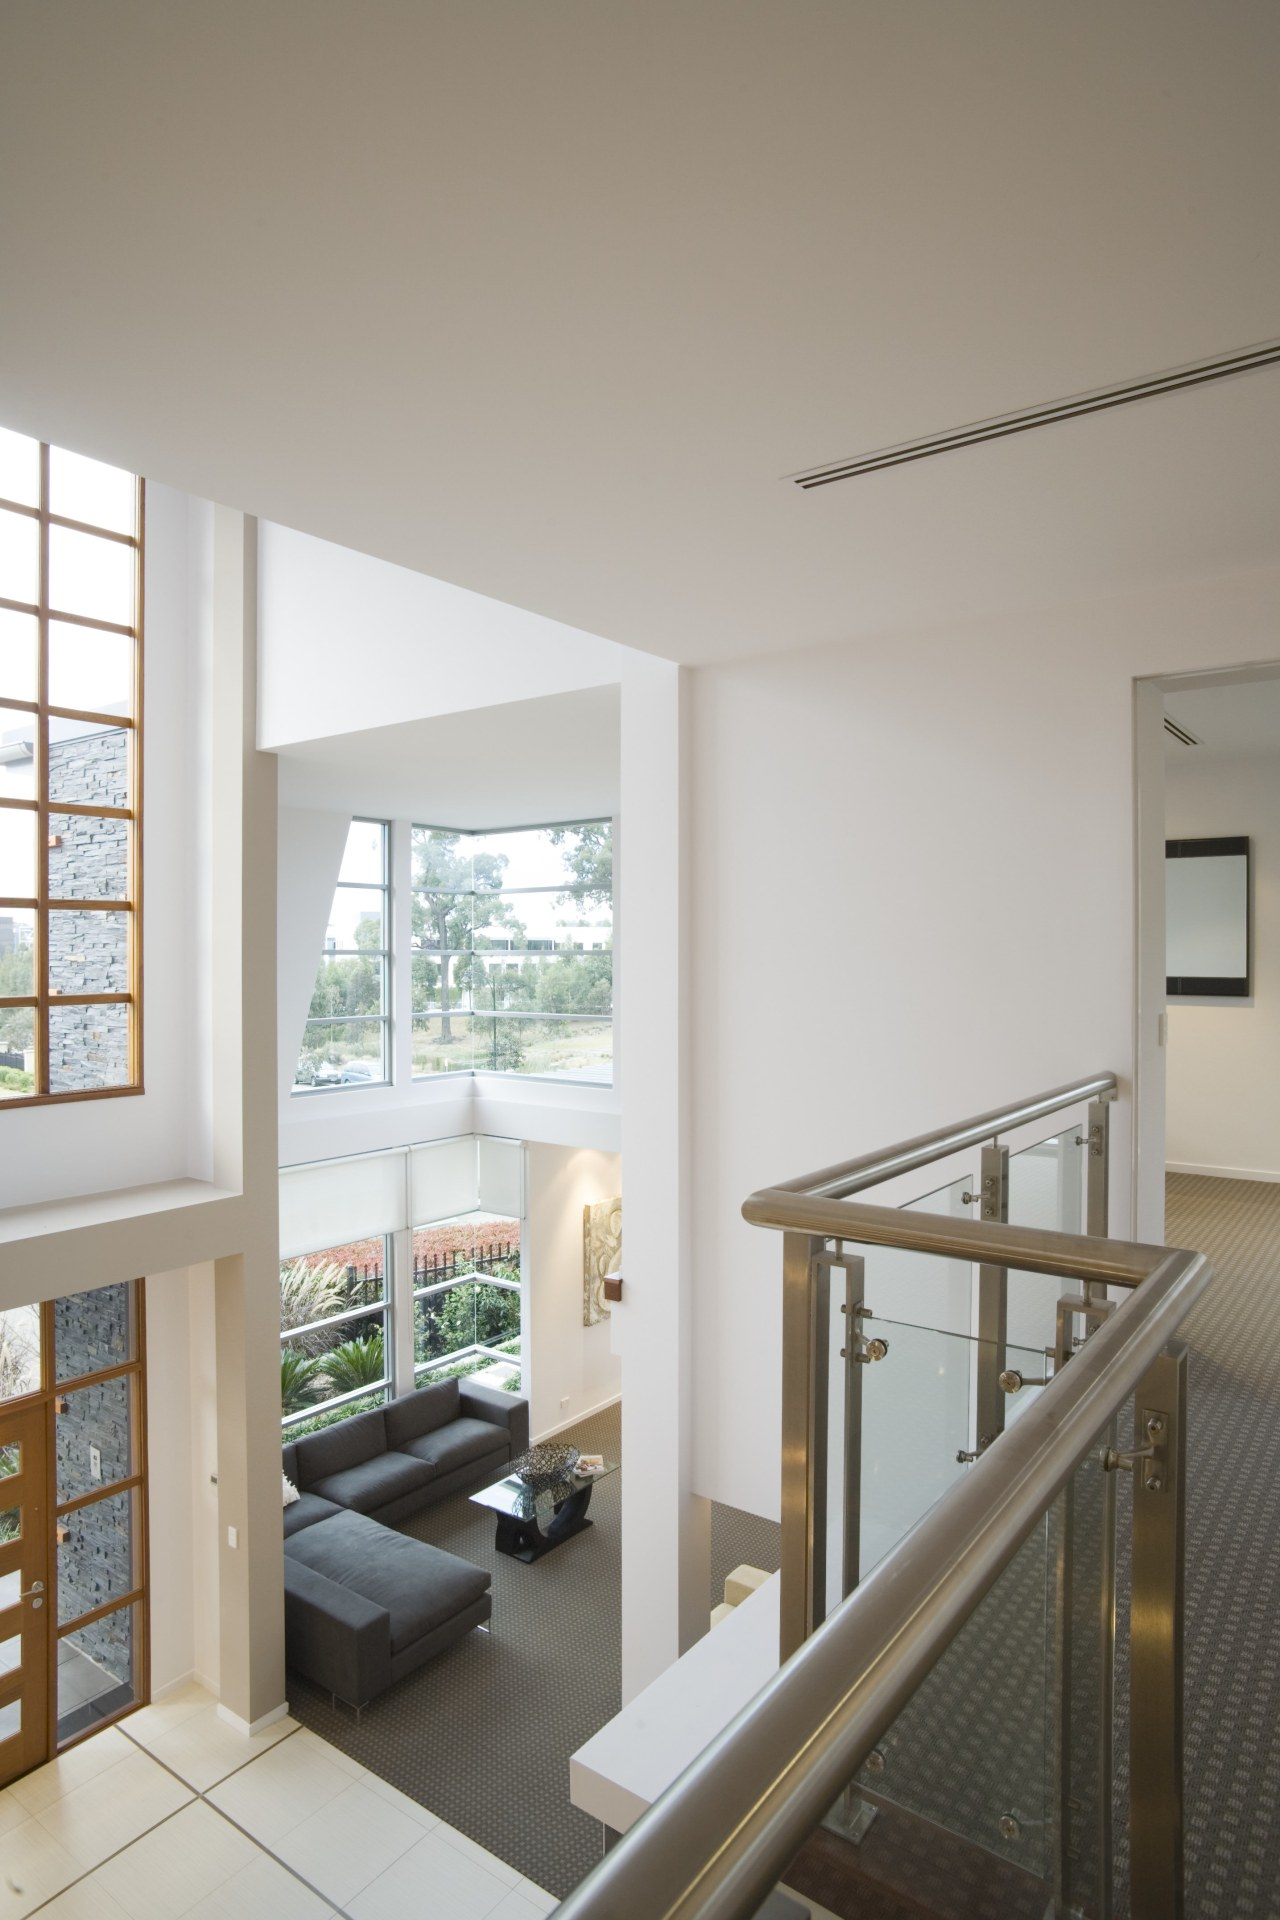 Interior view from the upper level of a architecture, daylighting, floor, handrail, home, house, interior design, living room, real estate, window, gray